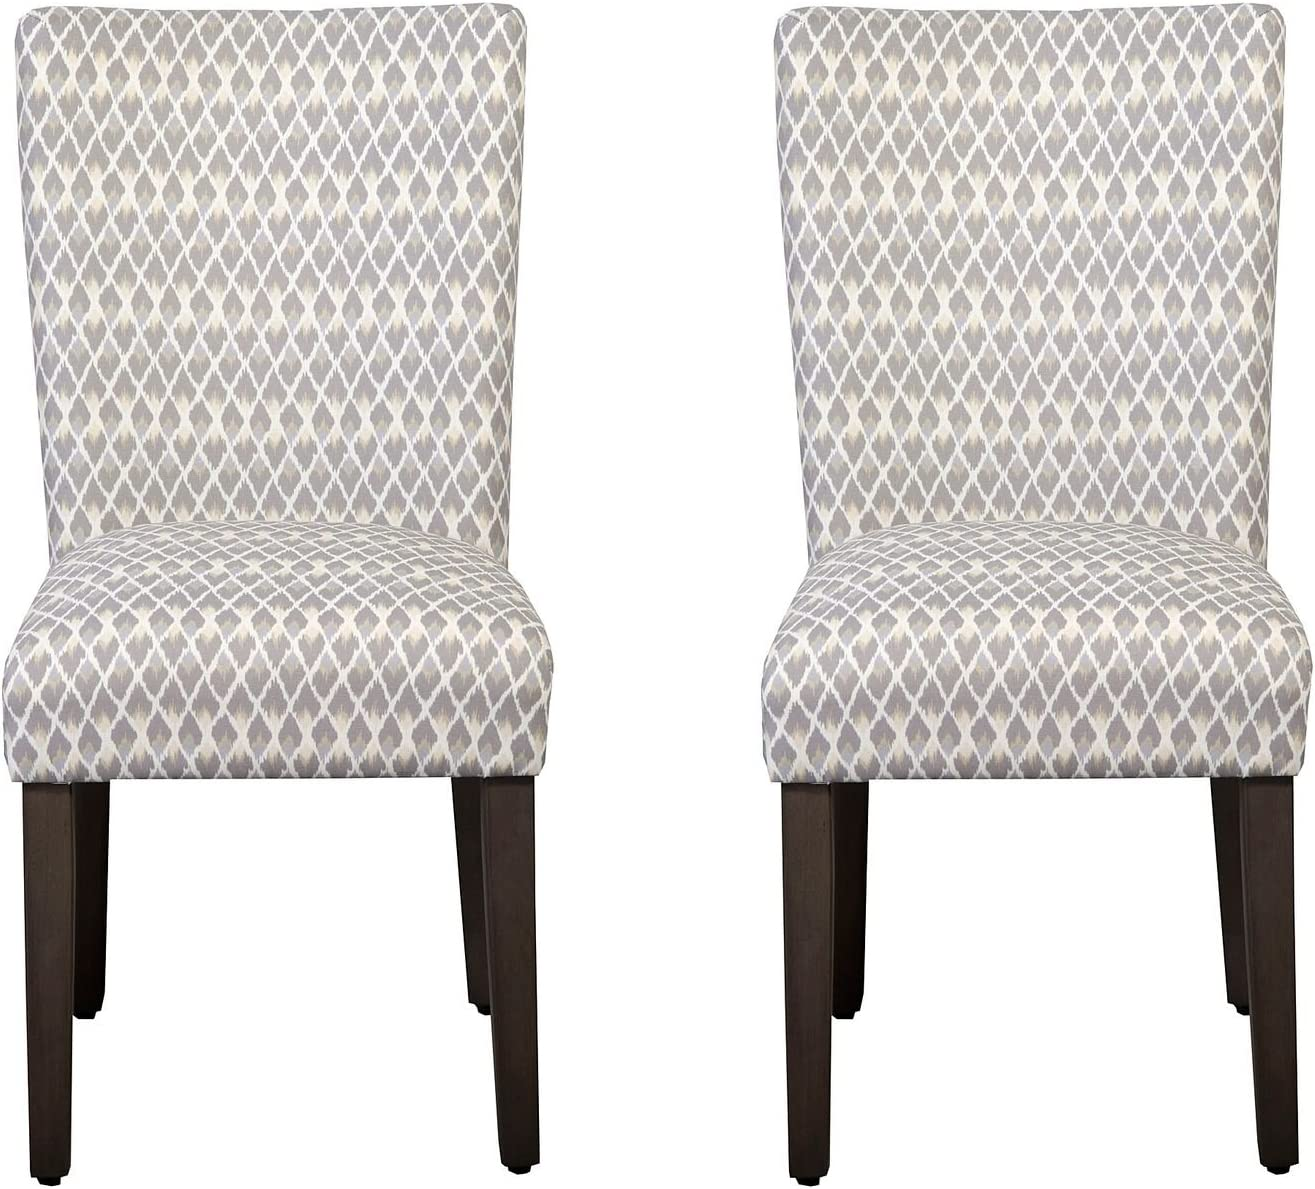 HomePop Parsons Classic Upholstered Accent Dining Chair, Set of 2, Gray